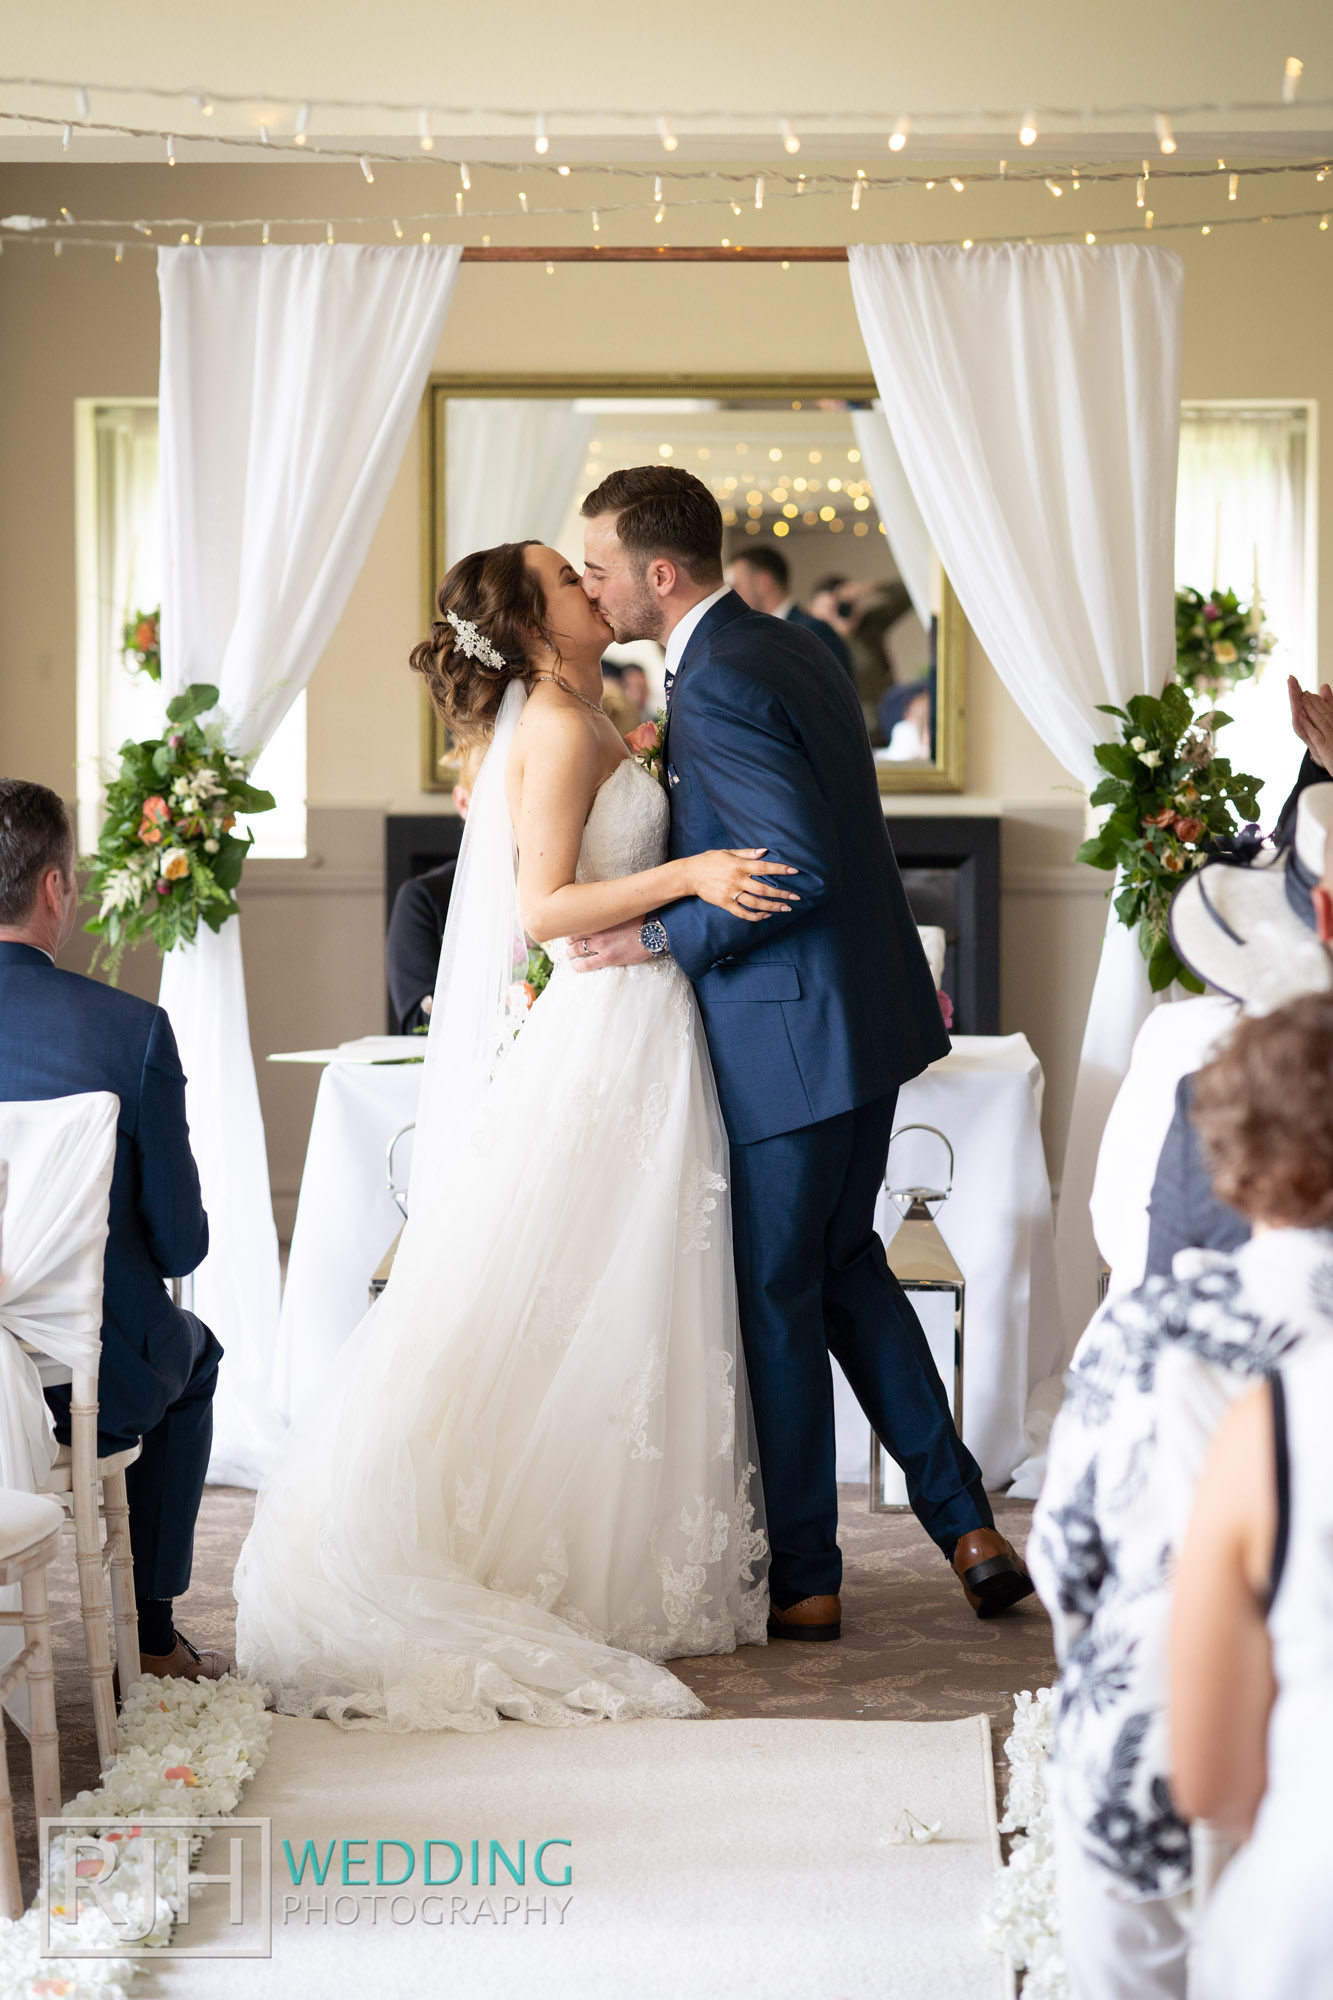 Whirlowbrook Hall Wedding Photography_Jack & Lydia_042_DS204985.jpg